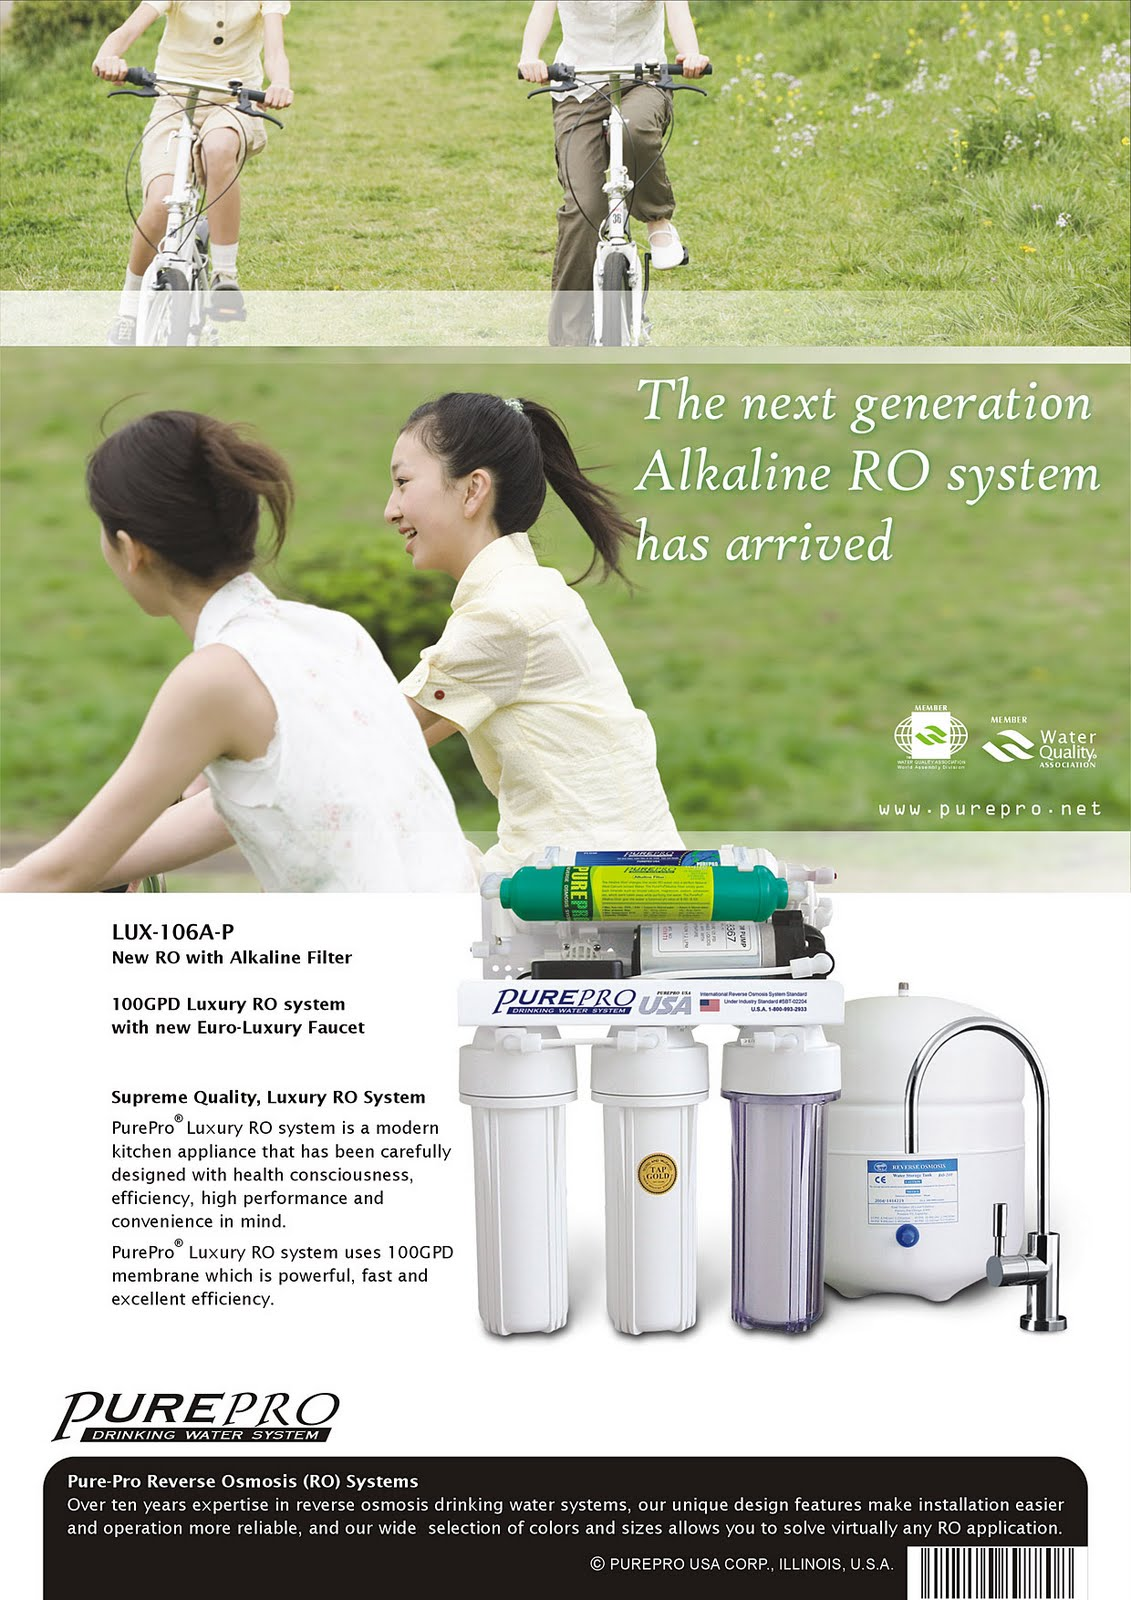 PurePro® LUX-106A-P Reverse Osmosis Water Filtration System